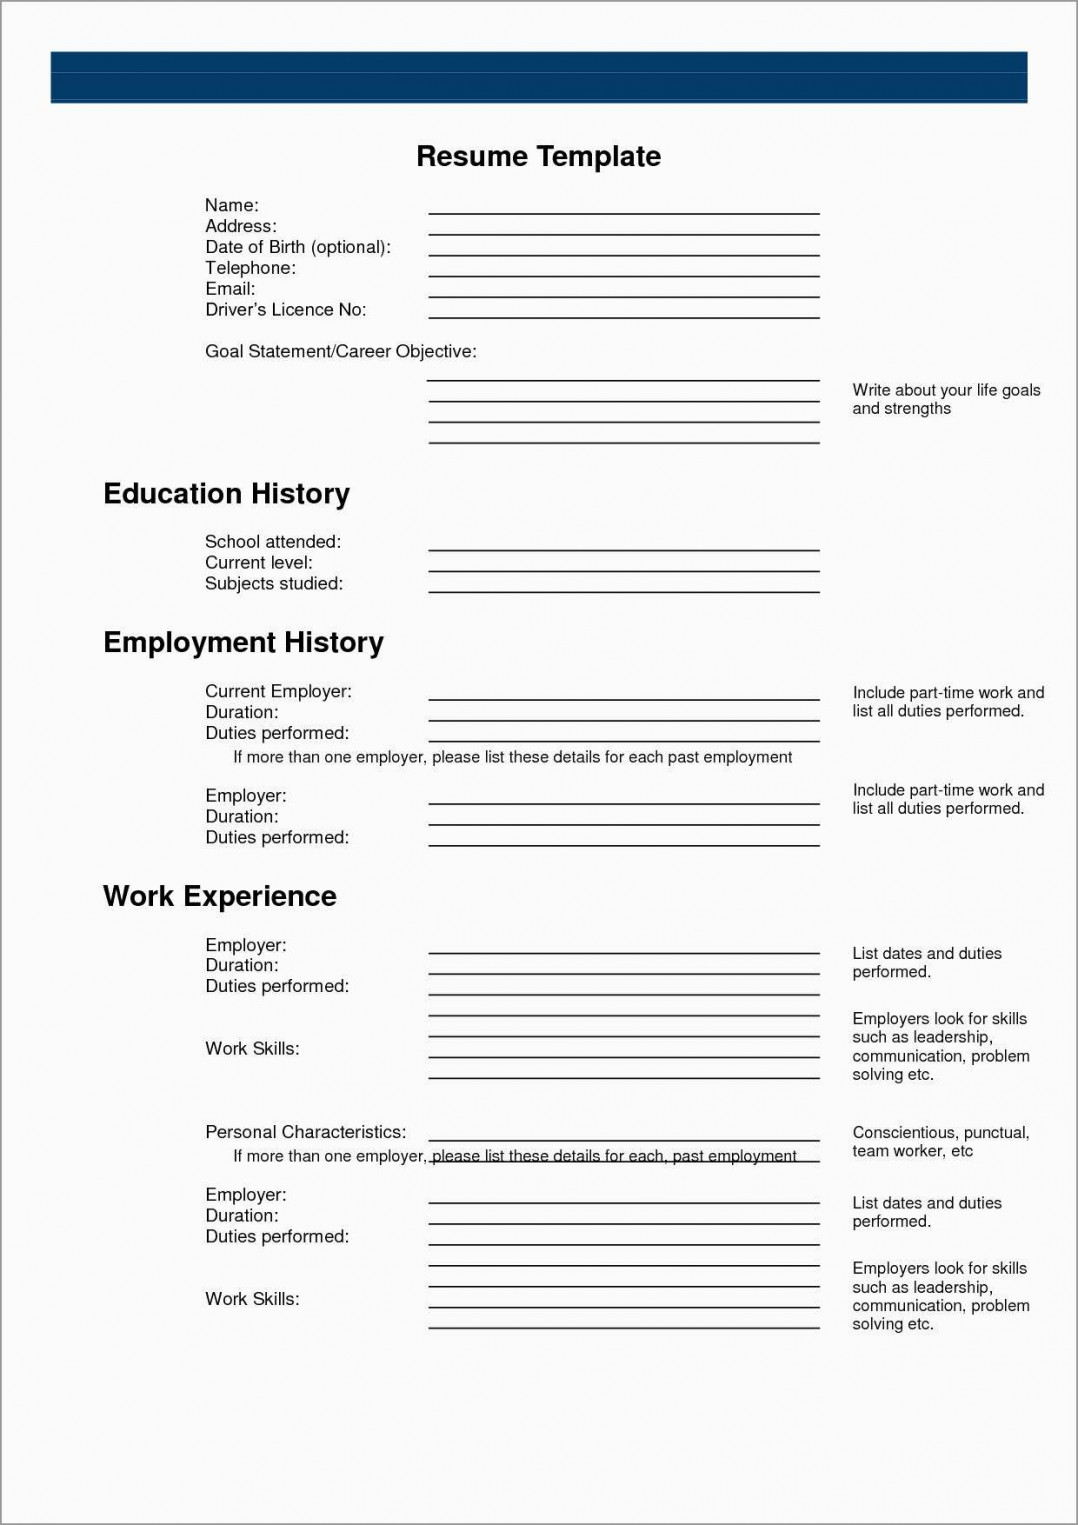 Free Resume Templates To Print Out